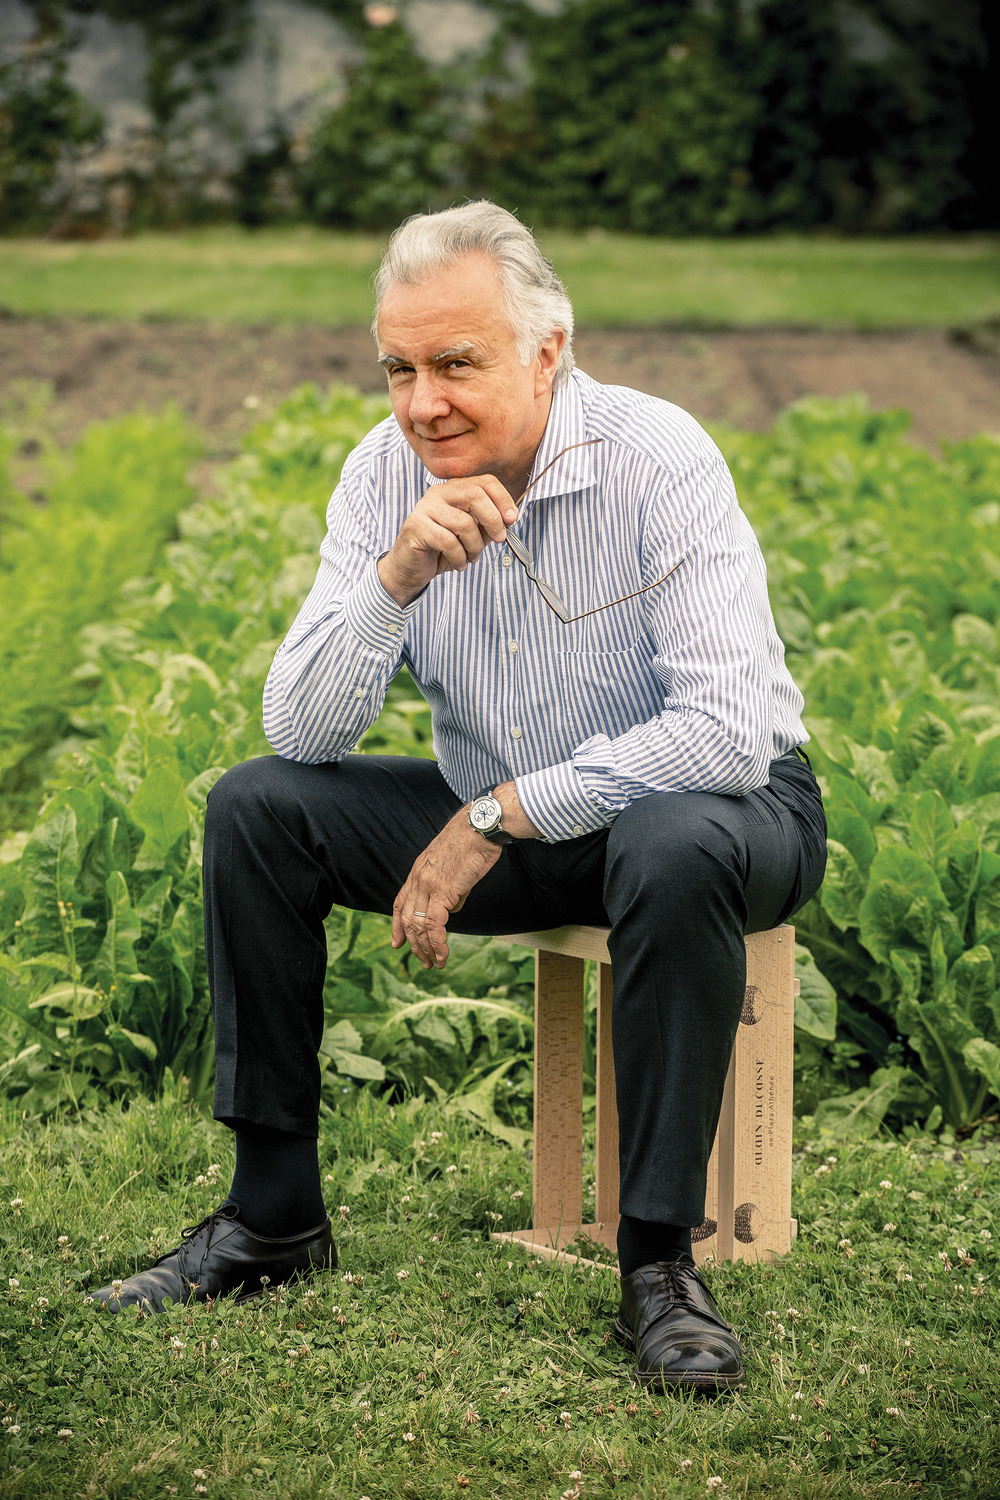 Sitting in Jardin de la Reine at Versailles Palace where he picks his ingredients, Alain Ducasse is as meticulous sourcing food as he is preparing it. Photography by Guillaume Czerw